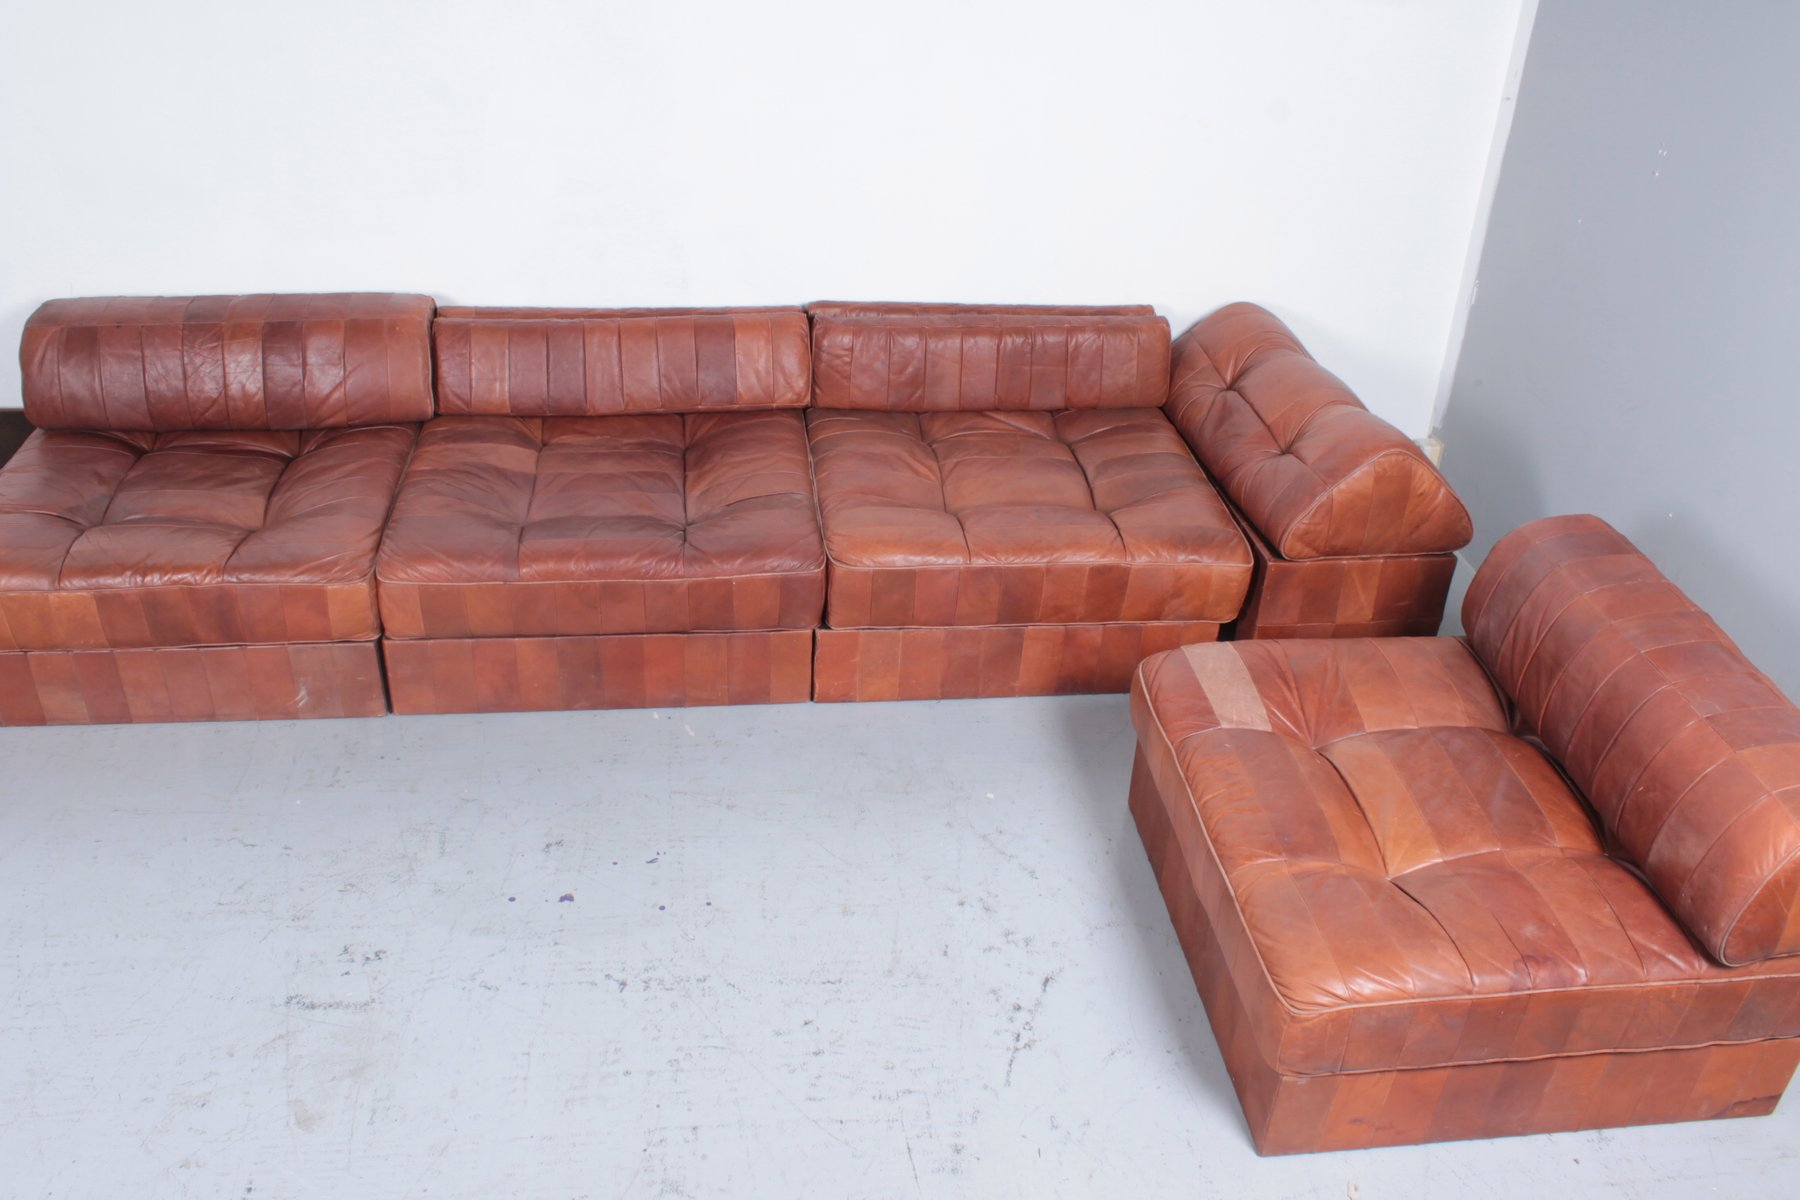 Ds88 Cognac Leather Modular Sofa From De Sede 1975 For Sale At Pamono